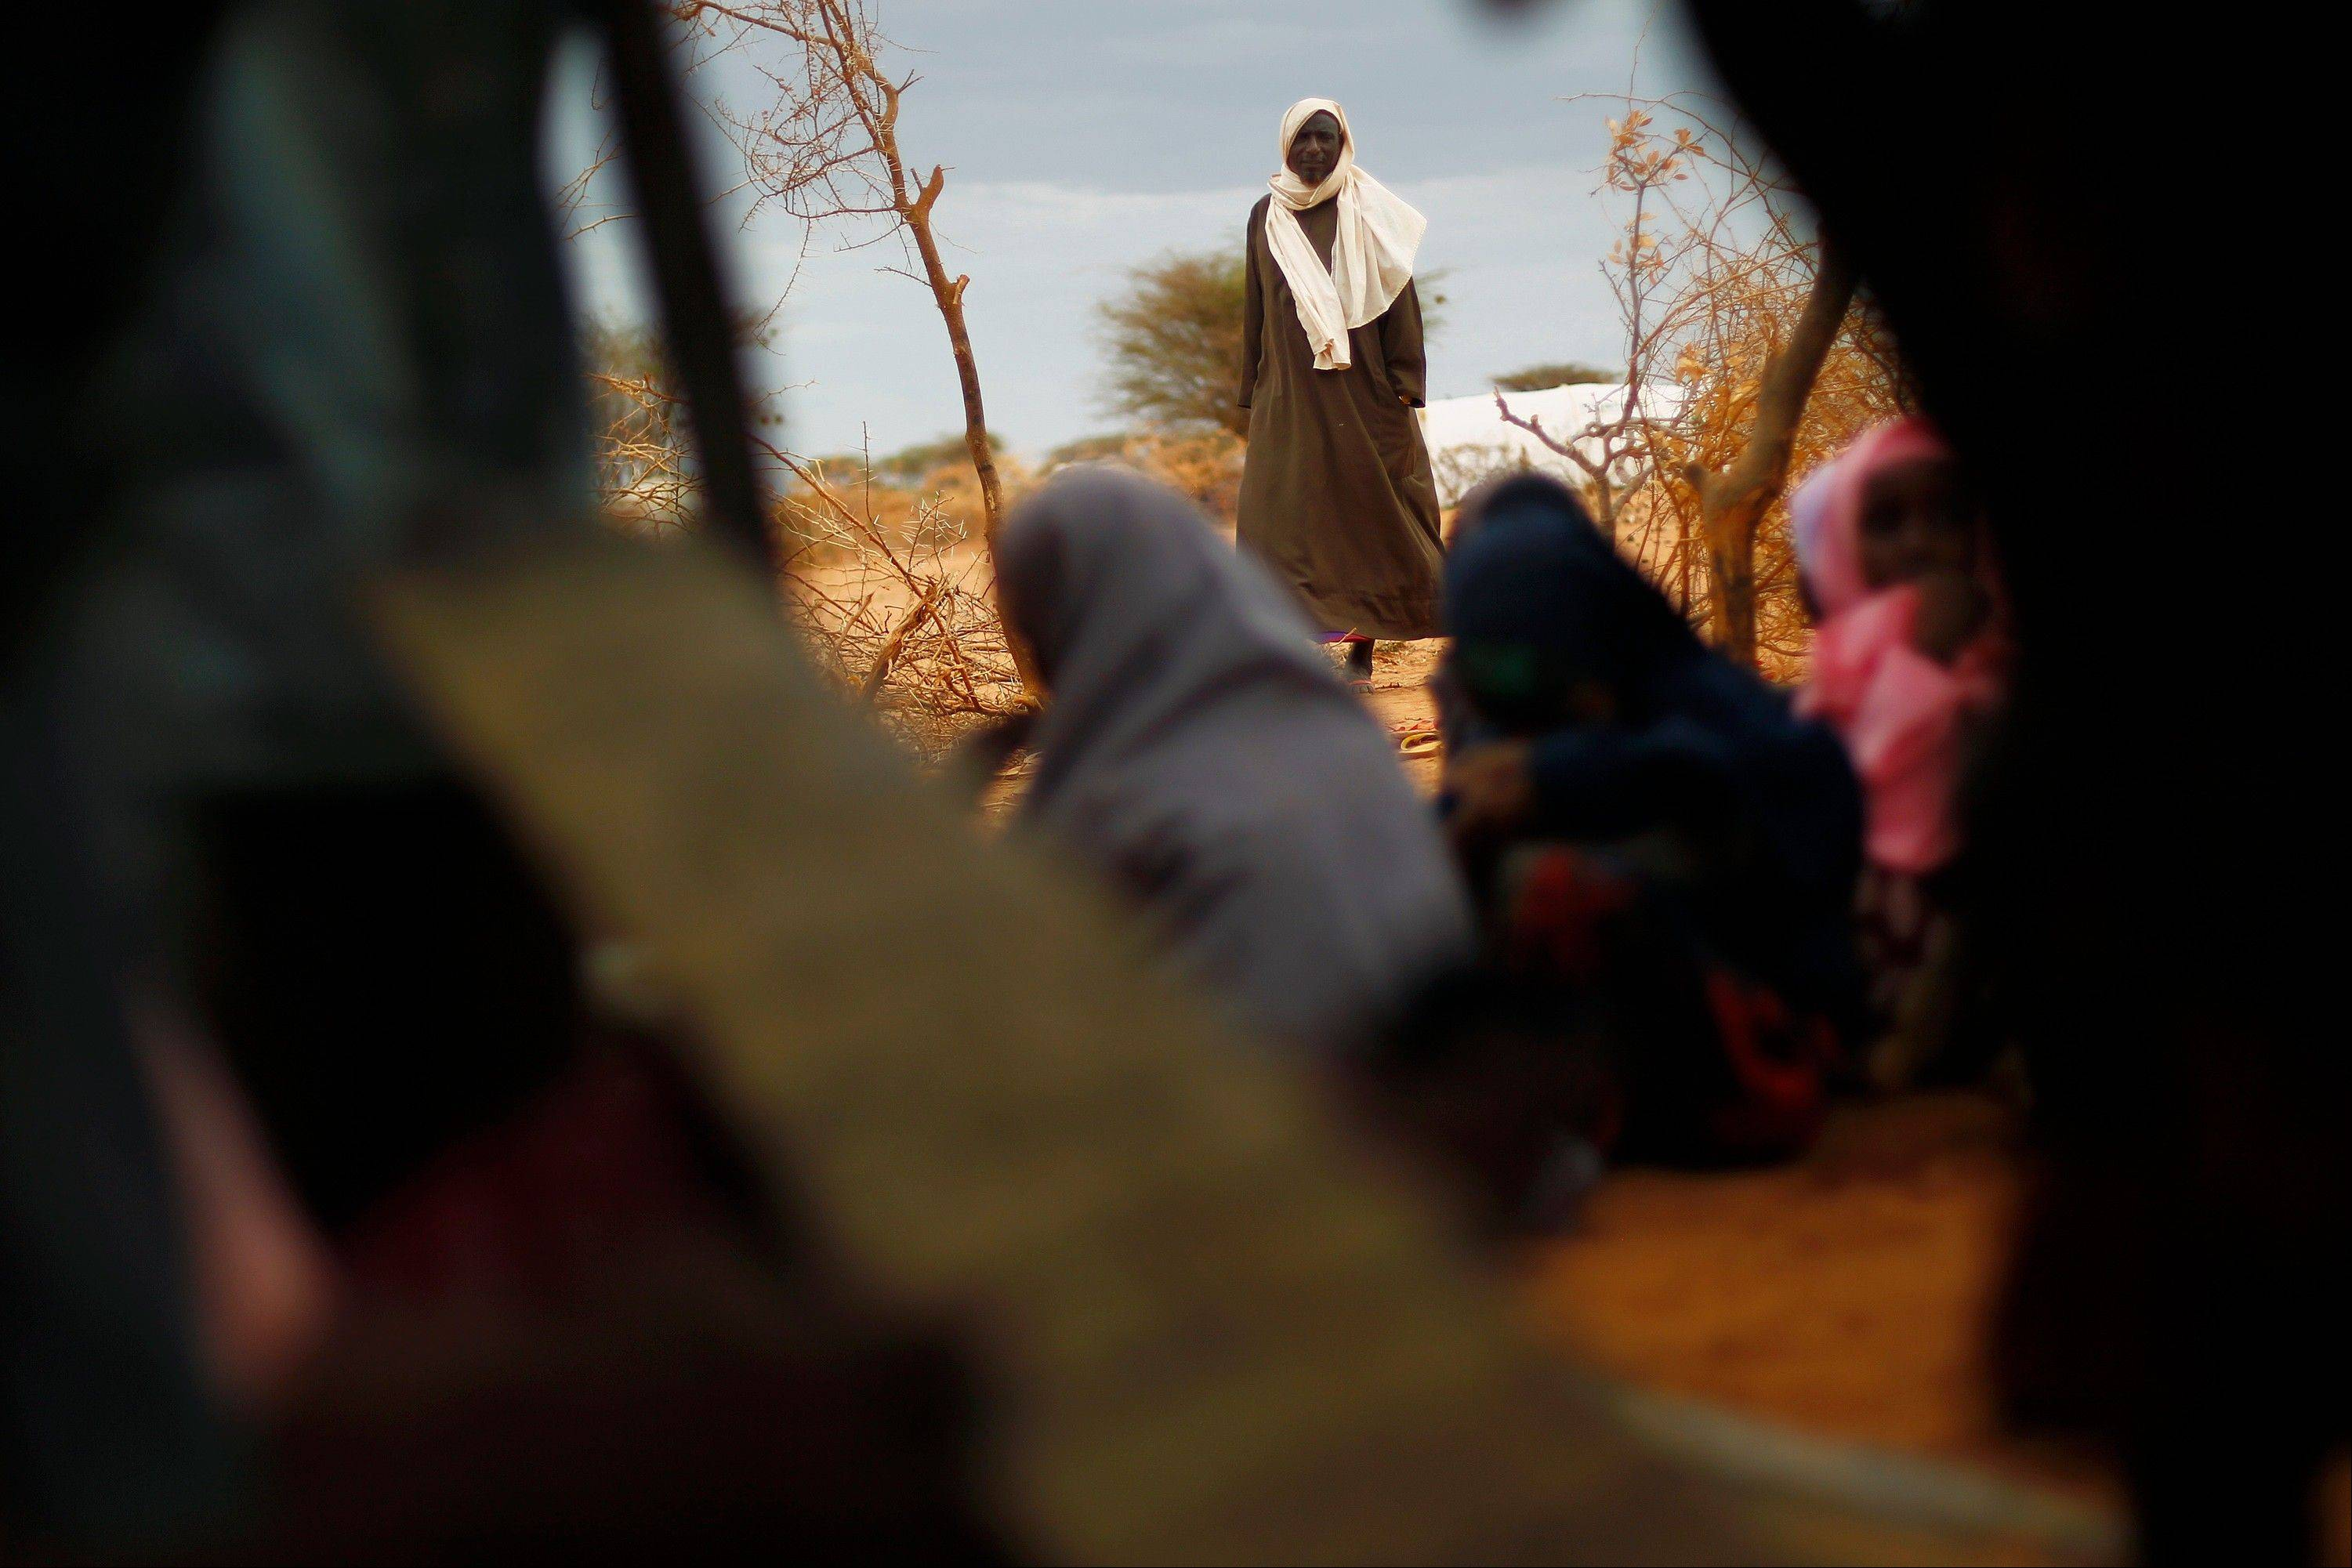 A Somali refugee looks at pupils studying the Koran at an outdoor madrasa at the Ifo camp outside Dadaab, Eastern Kenya, 100 kms (60 miles) from the Somali border, Tuesday Aug. 9, 2011. U.S. President Barack Obama has approved $105 million for humanitarian efforts in the Horn of Africa to combat worsening drought and famine. The drought and famine in the Horn of Africa has killed more than 29,000 children under the age of 5 in the last 90 days in southern Somalia alone, according to U.S. estimates. The U.N. says 640,000 Somali children are acutely malnourished, suggesting the death toll of small children will rise.